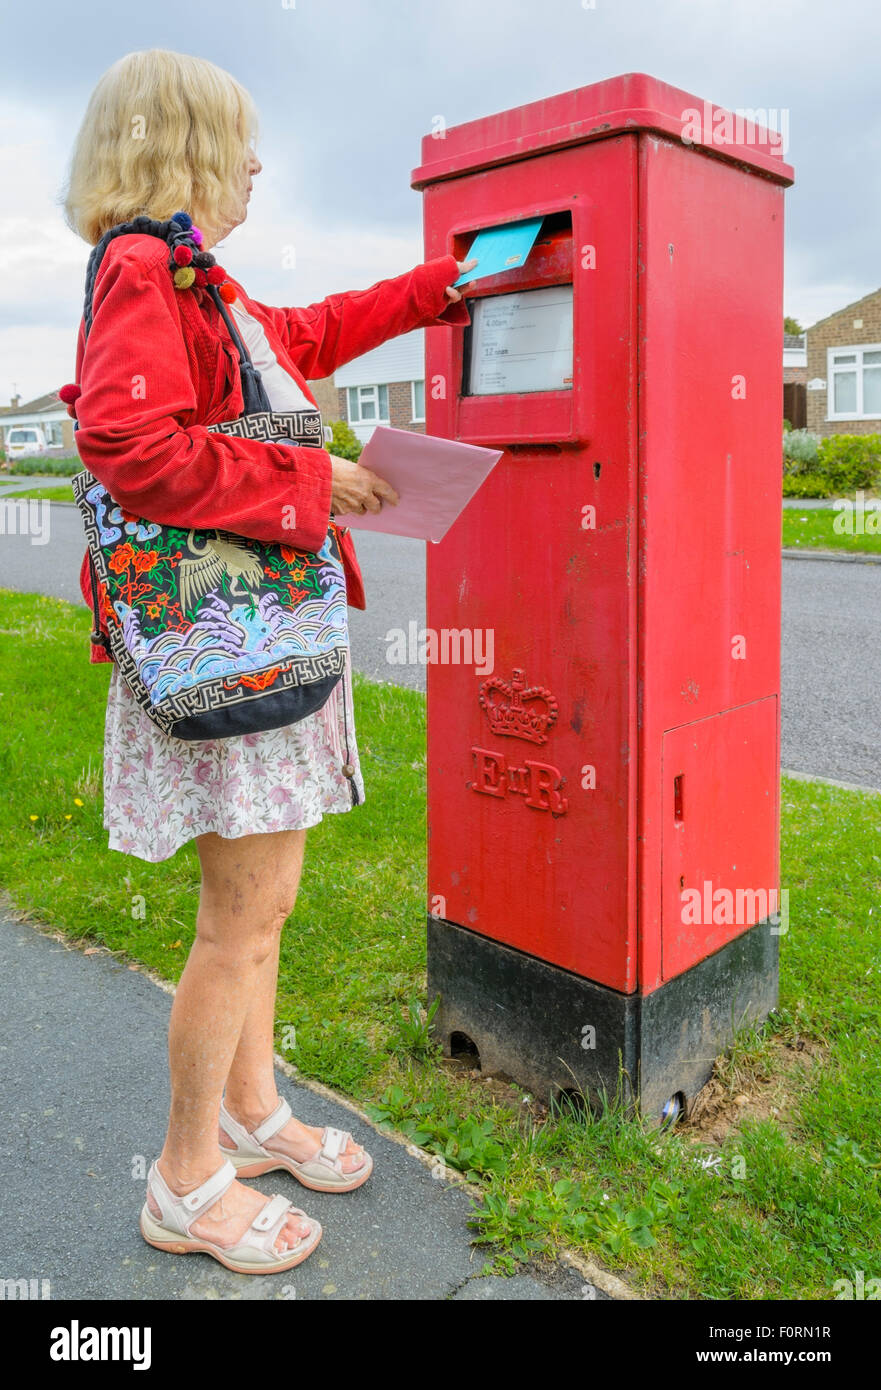 Senior woman mailing a letter in a red rectangular letter box in England, UK, Posting letters. Posting a letter. - Stock Image